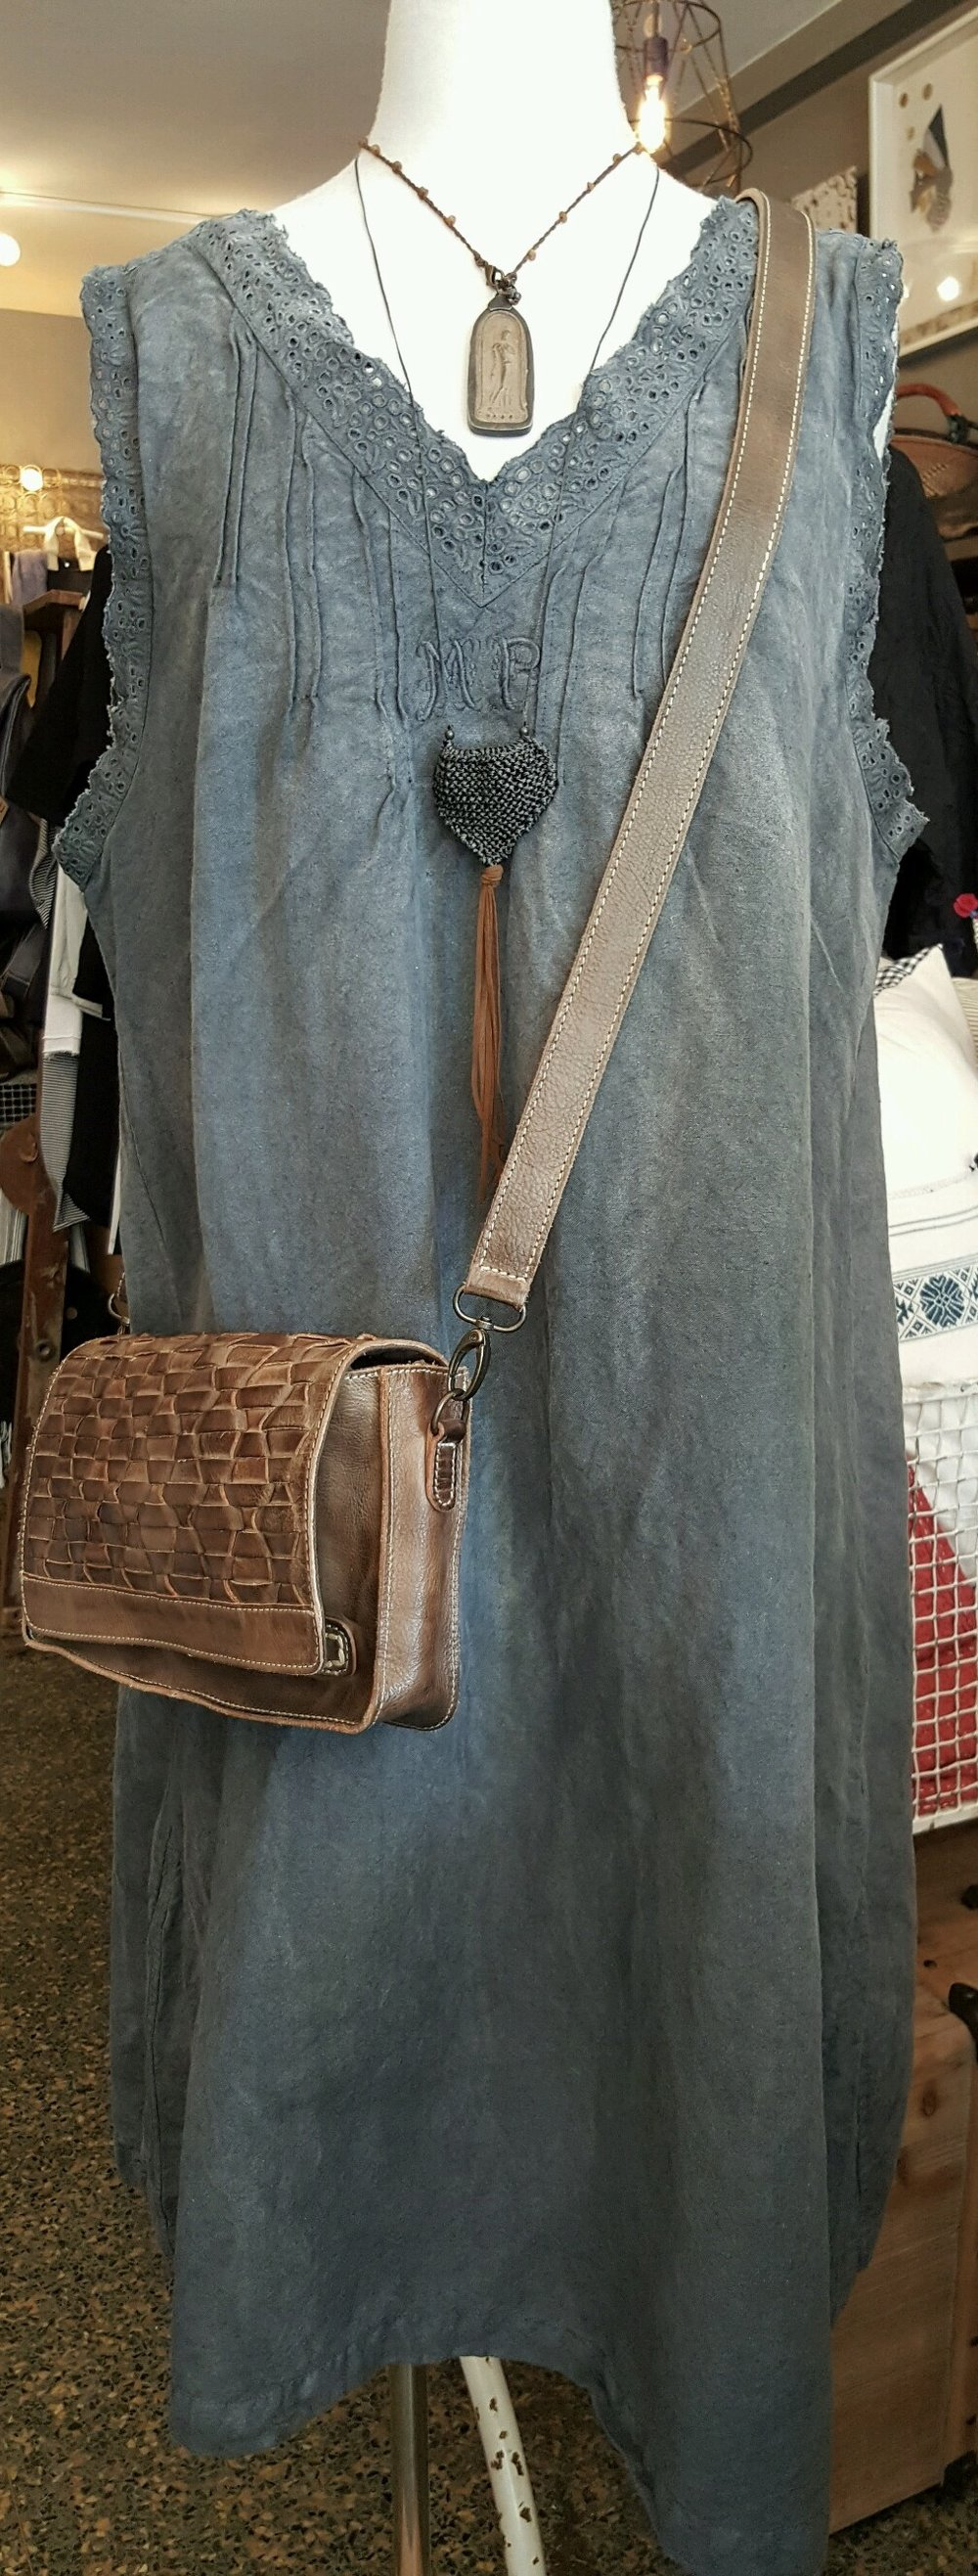 FullSizeRender copy.jpg